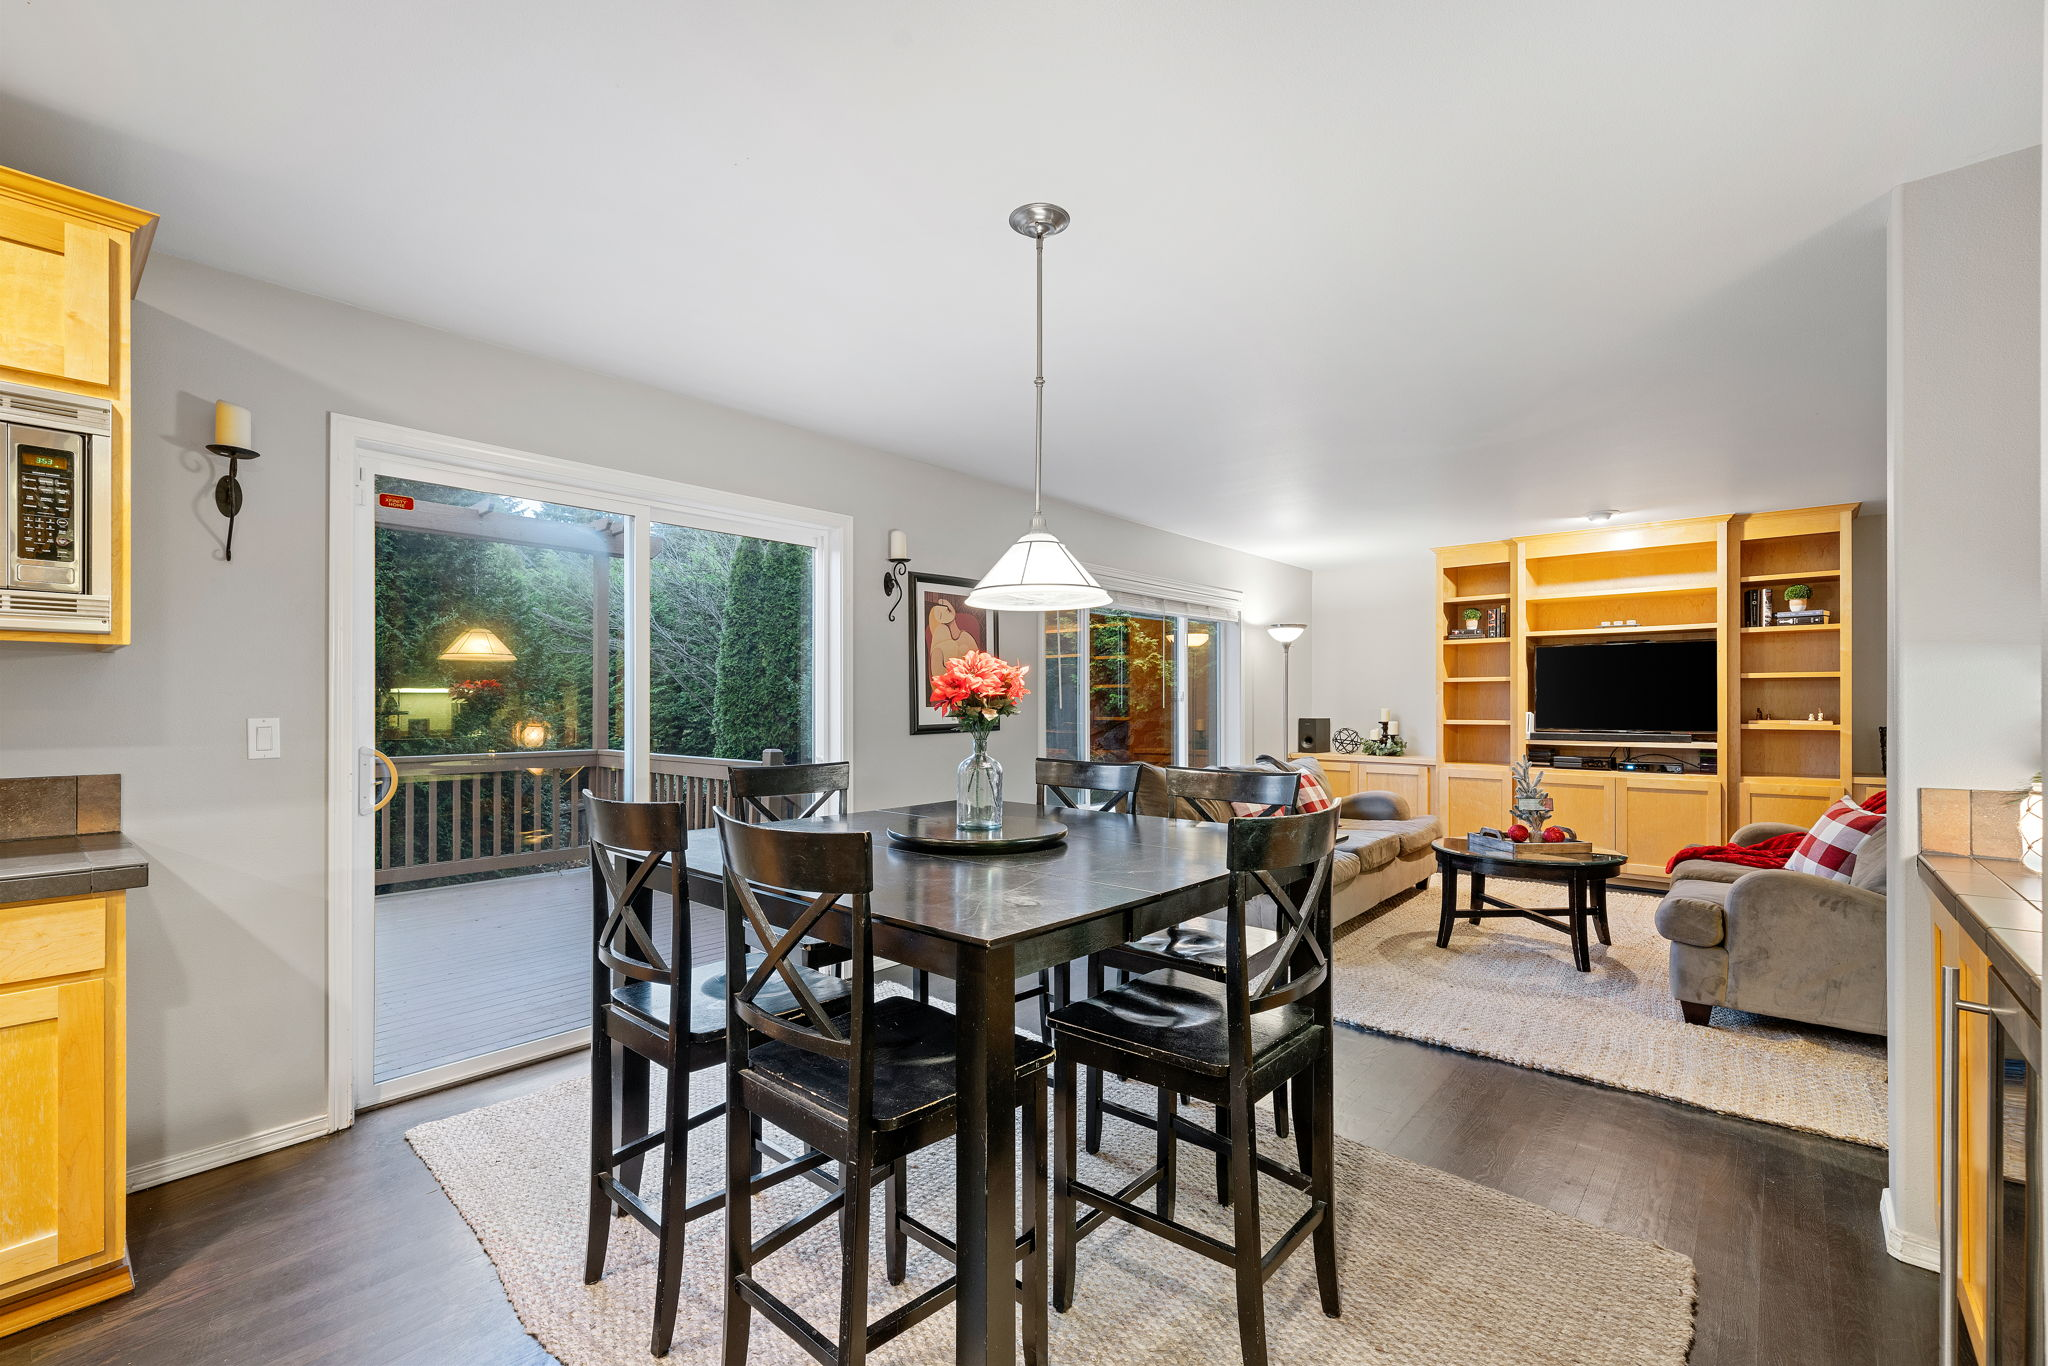 Dining room slider leads to large deck and fenced yard.Perfect for those summertime BBQs!